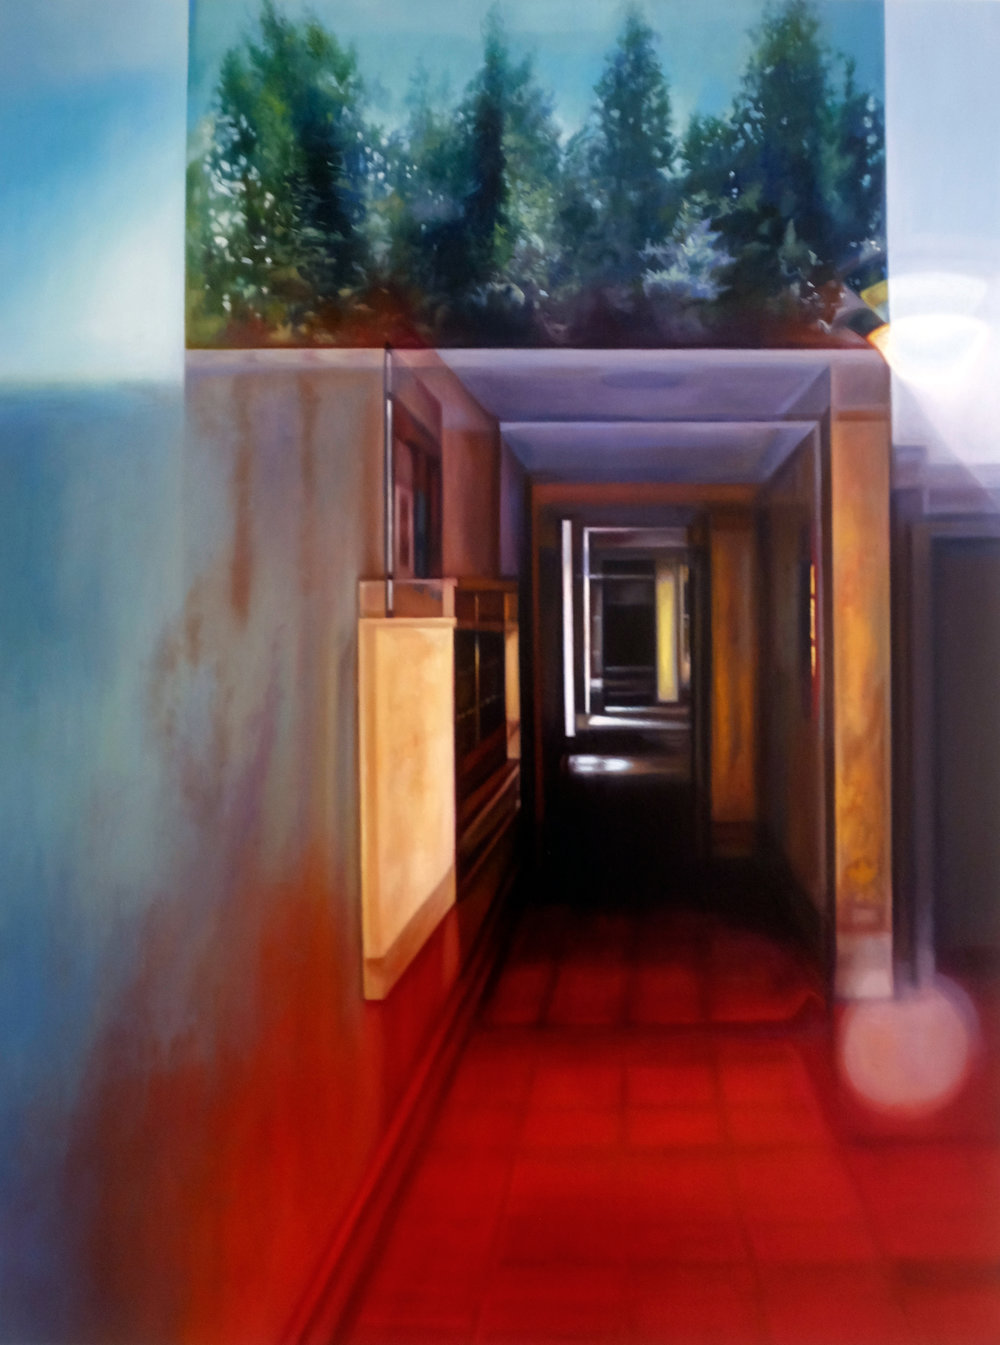 """Red Apartment Lobby with Trees    Oil on hardwood panel  24"""" x 18""""  2018"""